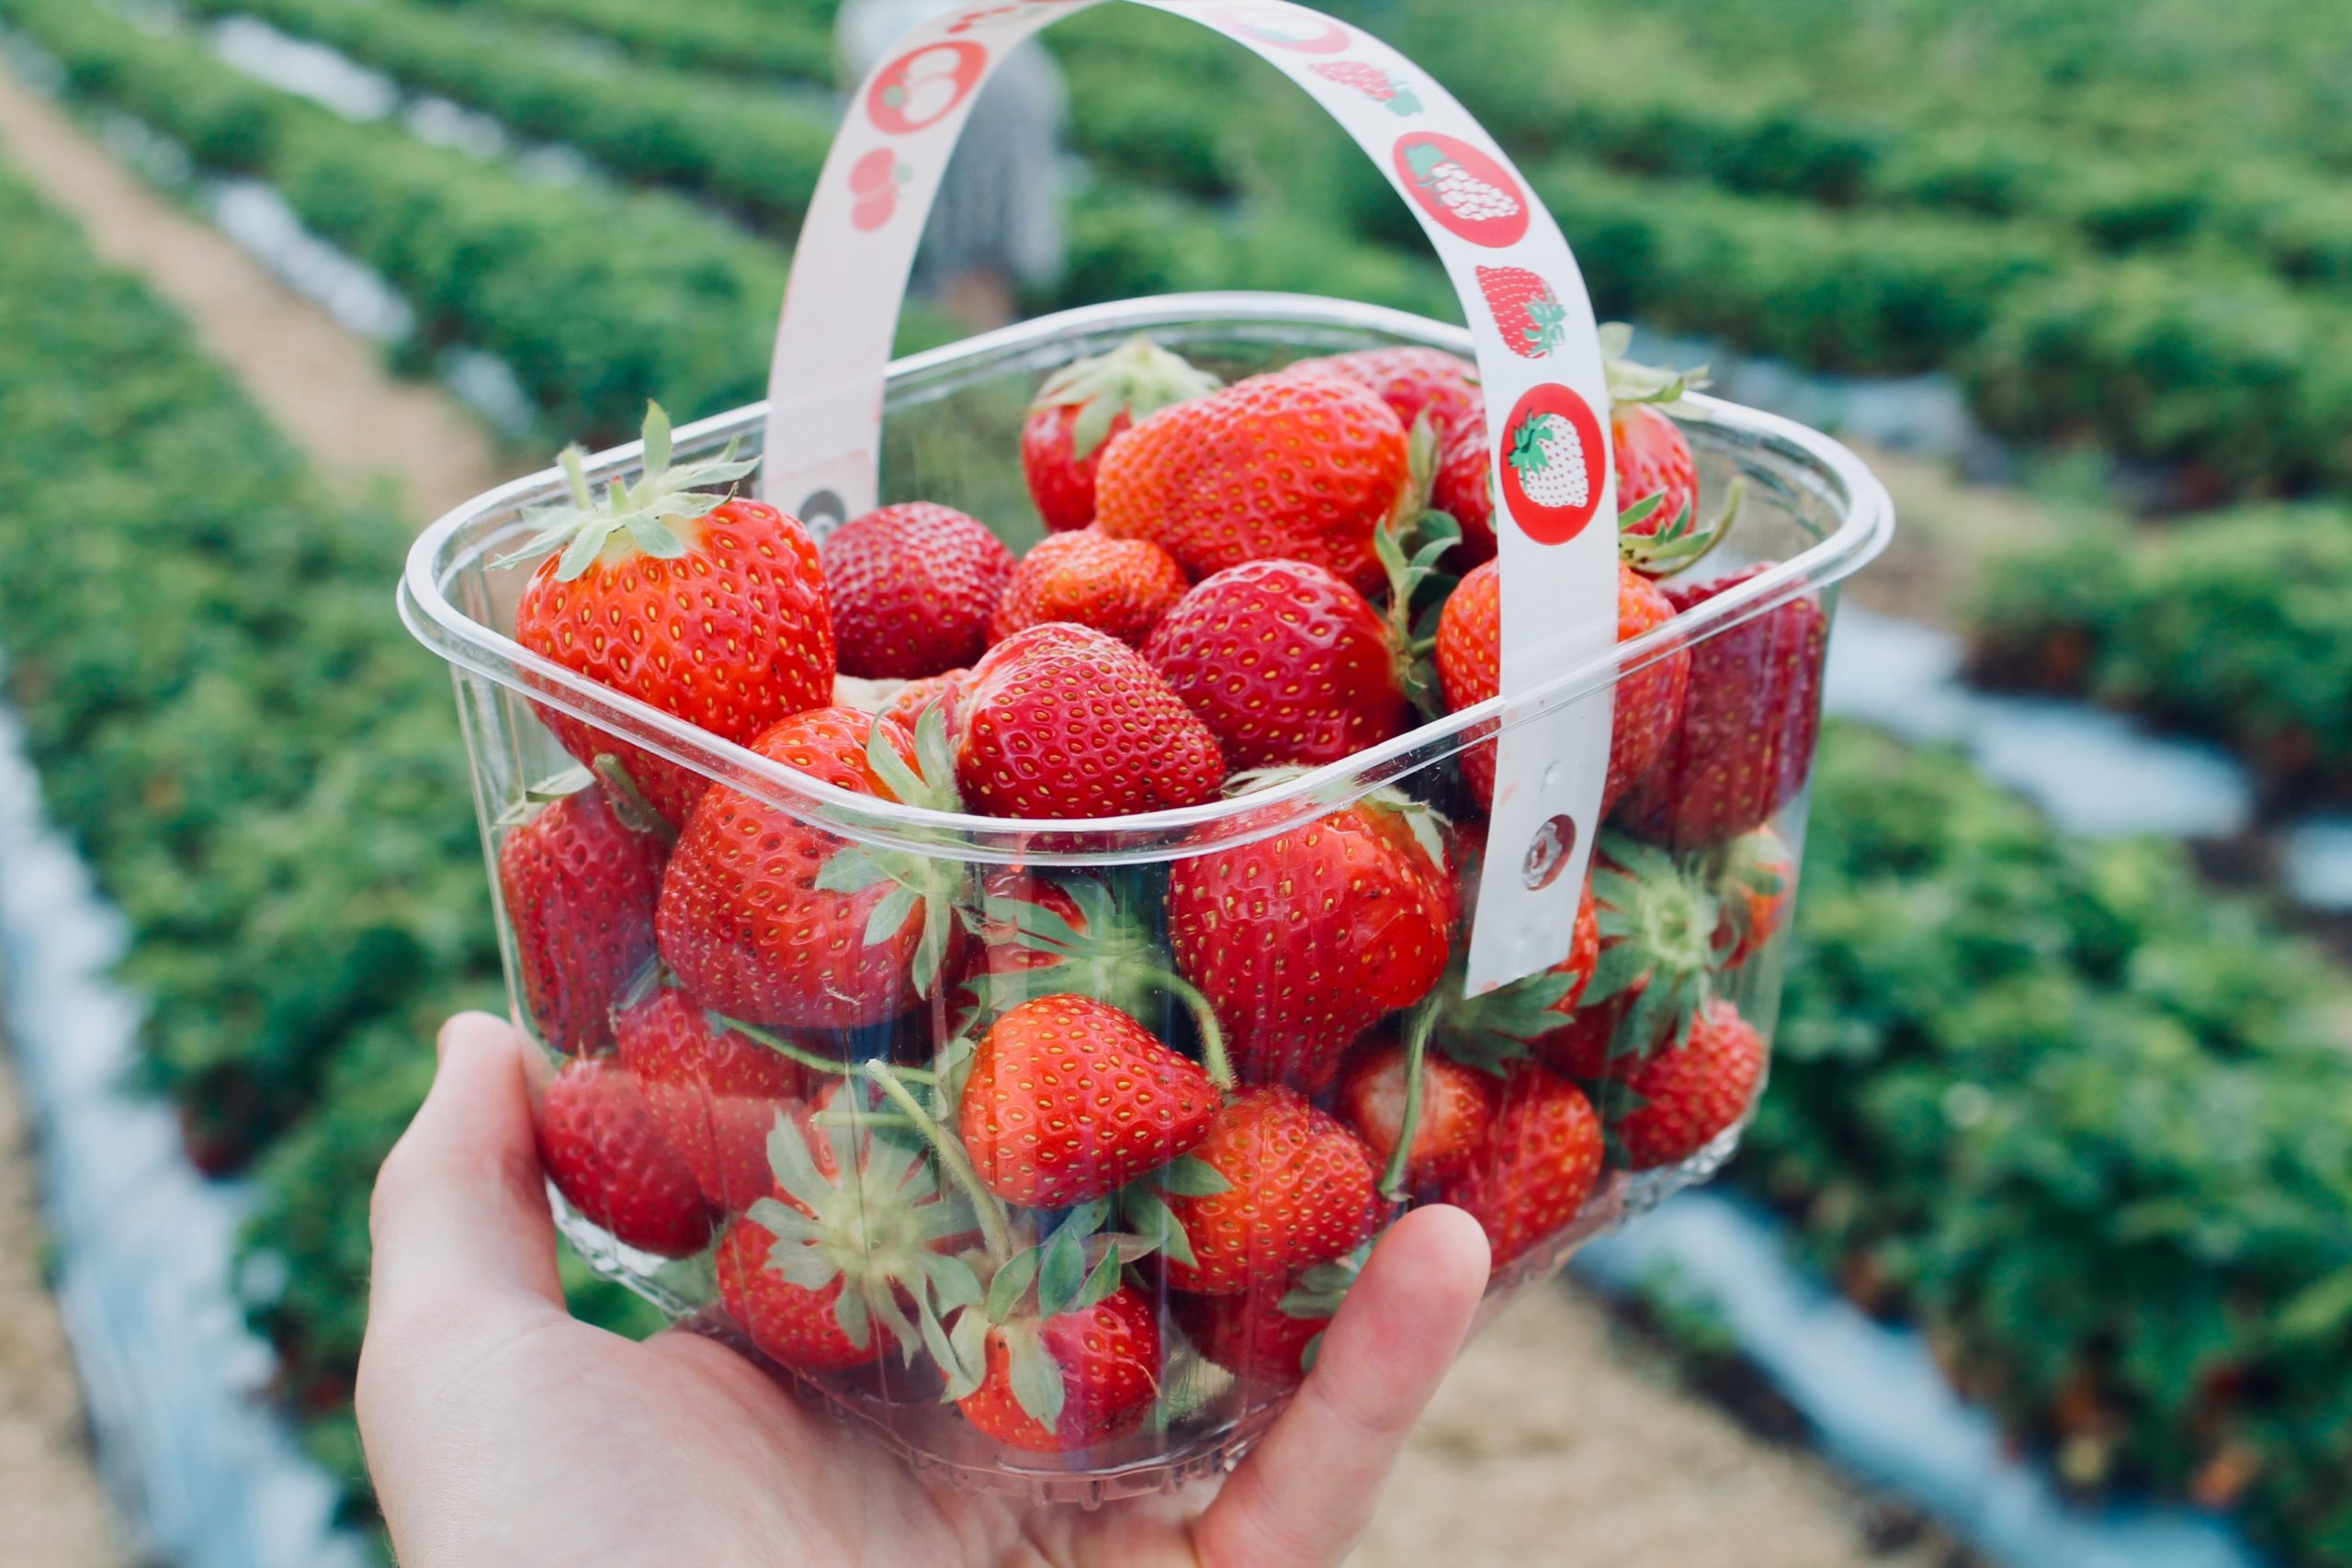 Where to Pick Your Own Berries in the DMV Area This Summer